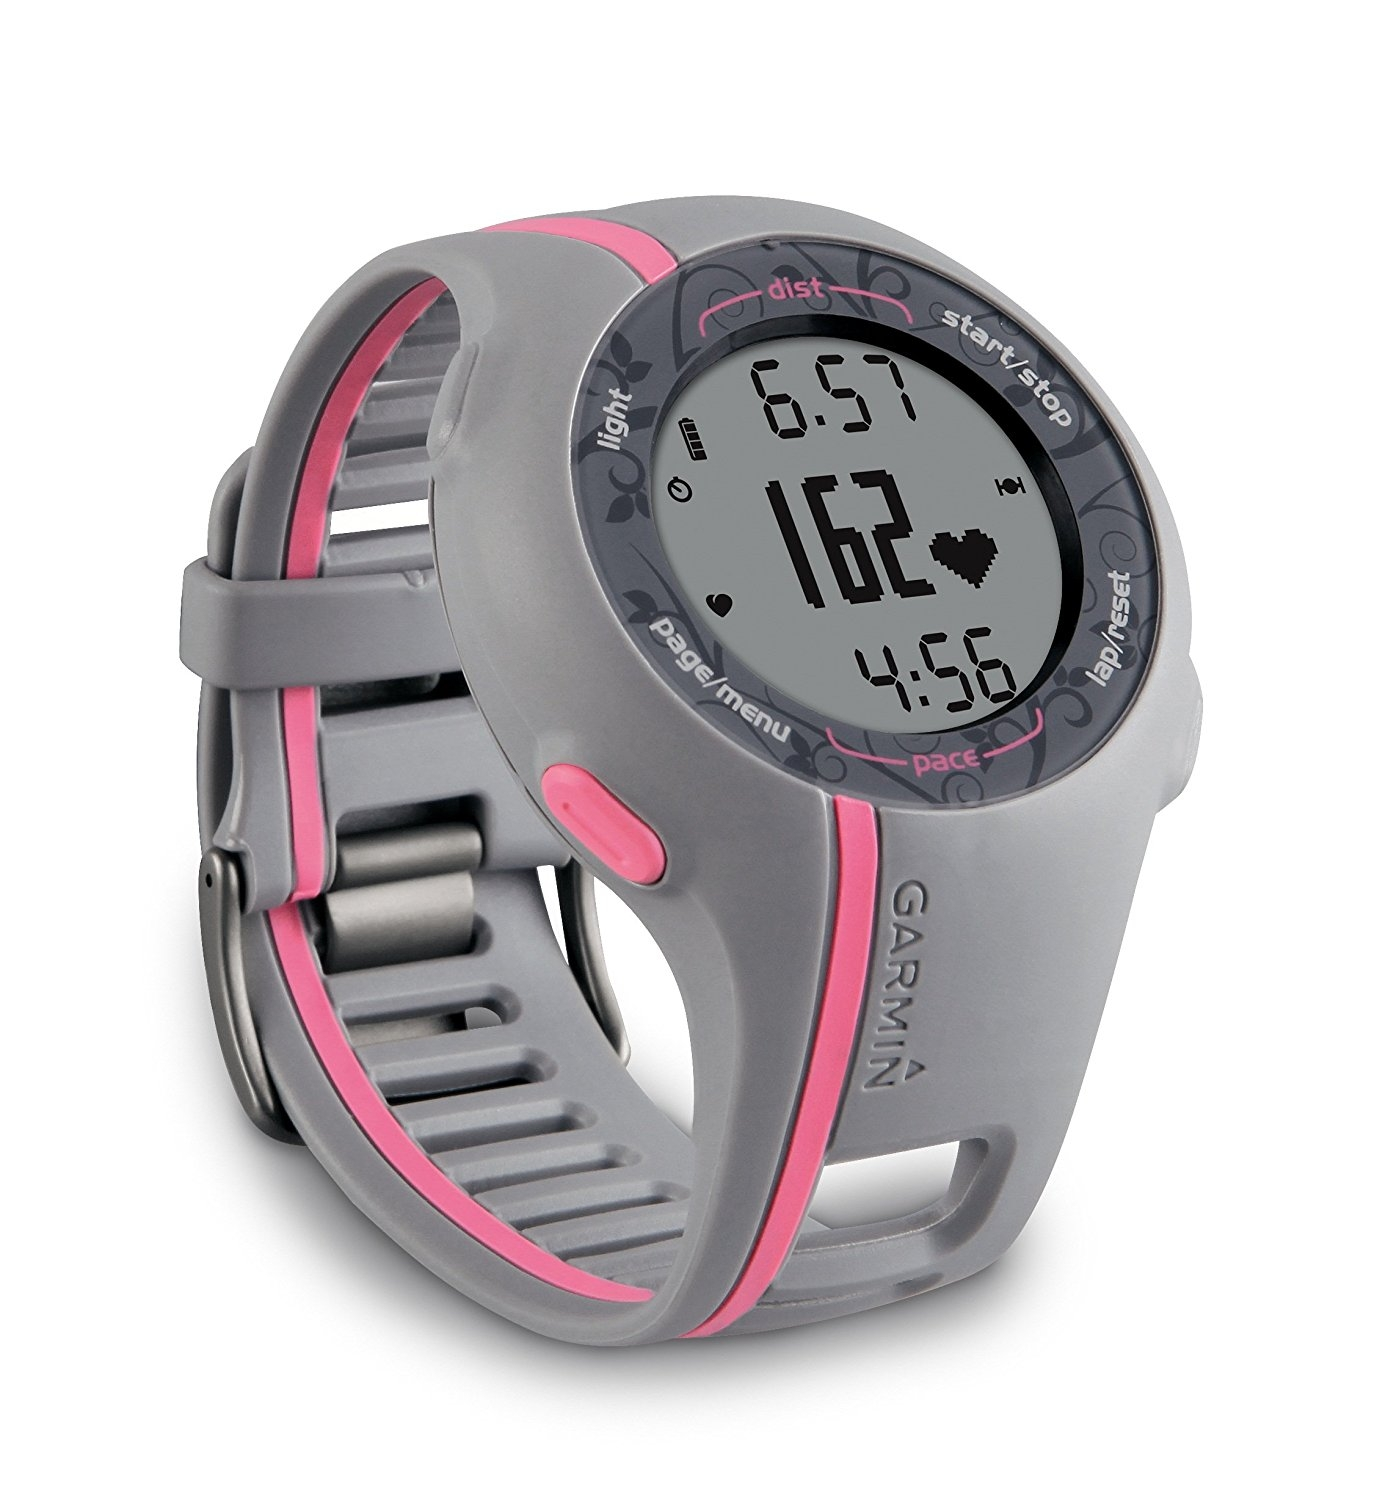 garmin forerunner 110 gps enabled unisex sport watch best offer reviews. Black Bedroom Furniture Sets. Home Design Ideas